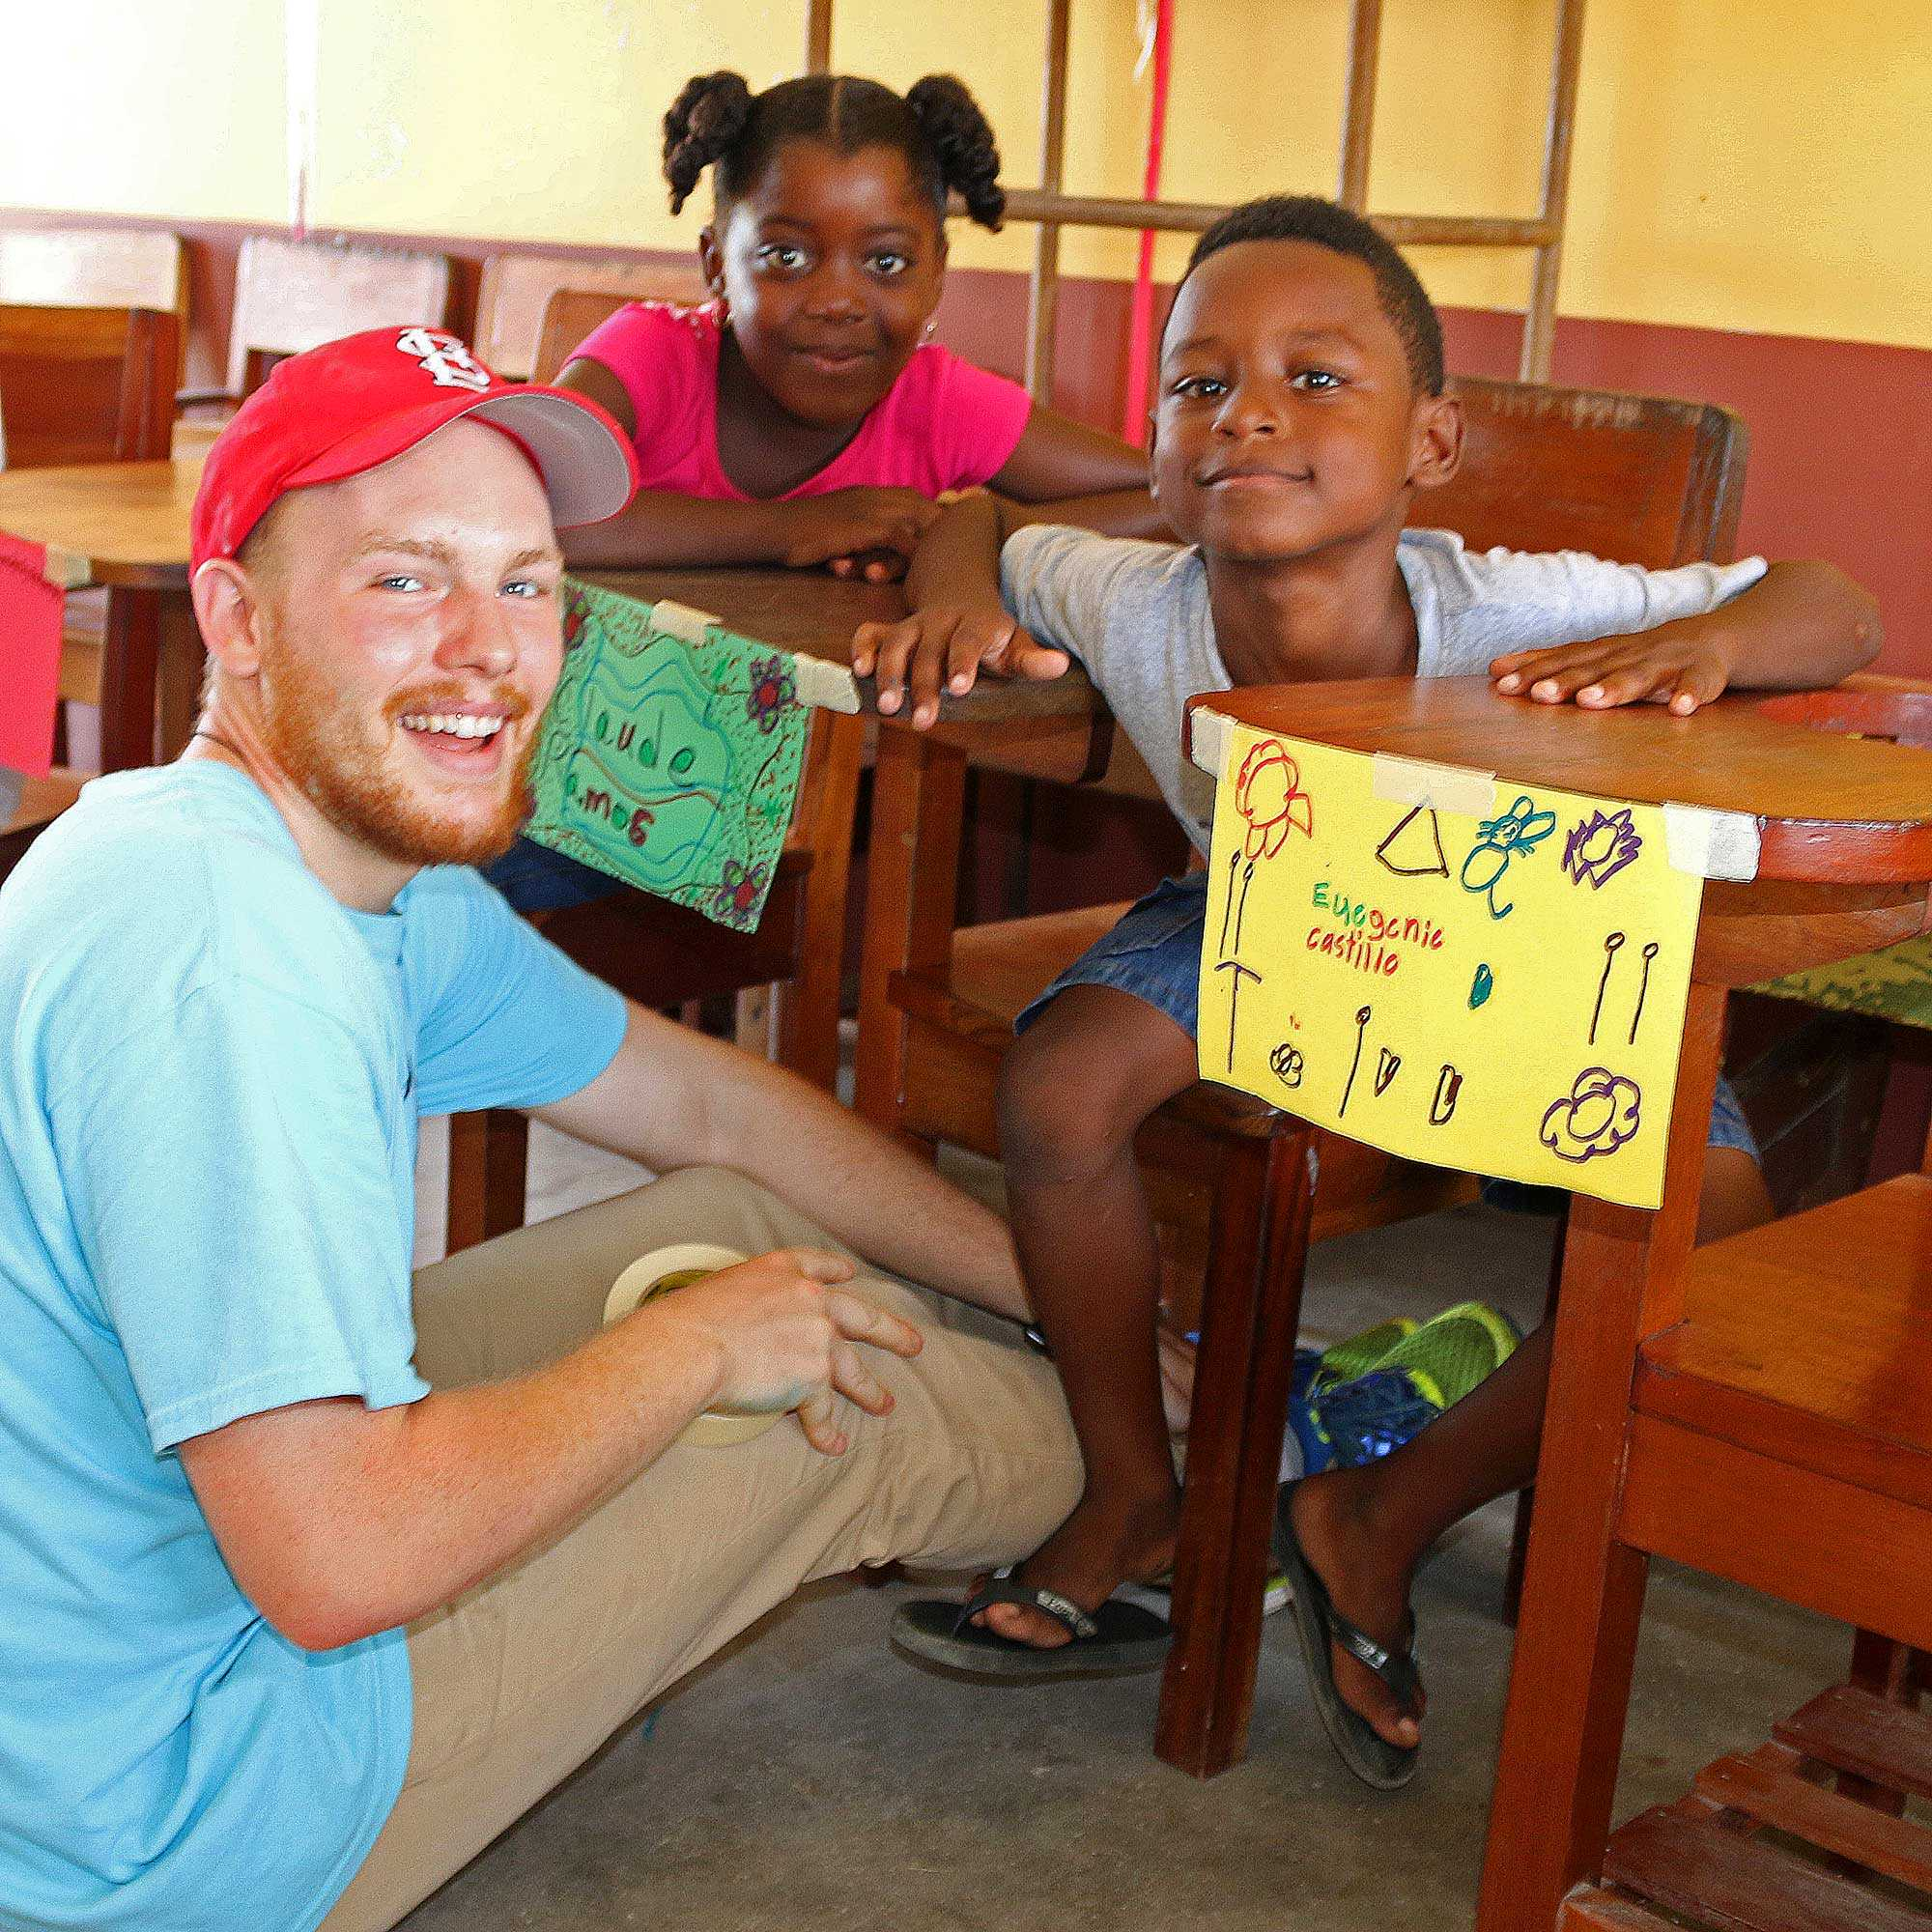 Brendan Dodd, management senior, poses with children during the summer 2015 Iggy Vols trip in Dagriga, Belize. The volunteers spent their time teaching children and learning about the culture